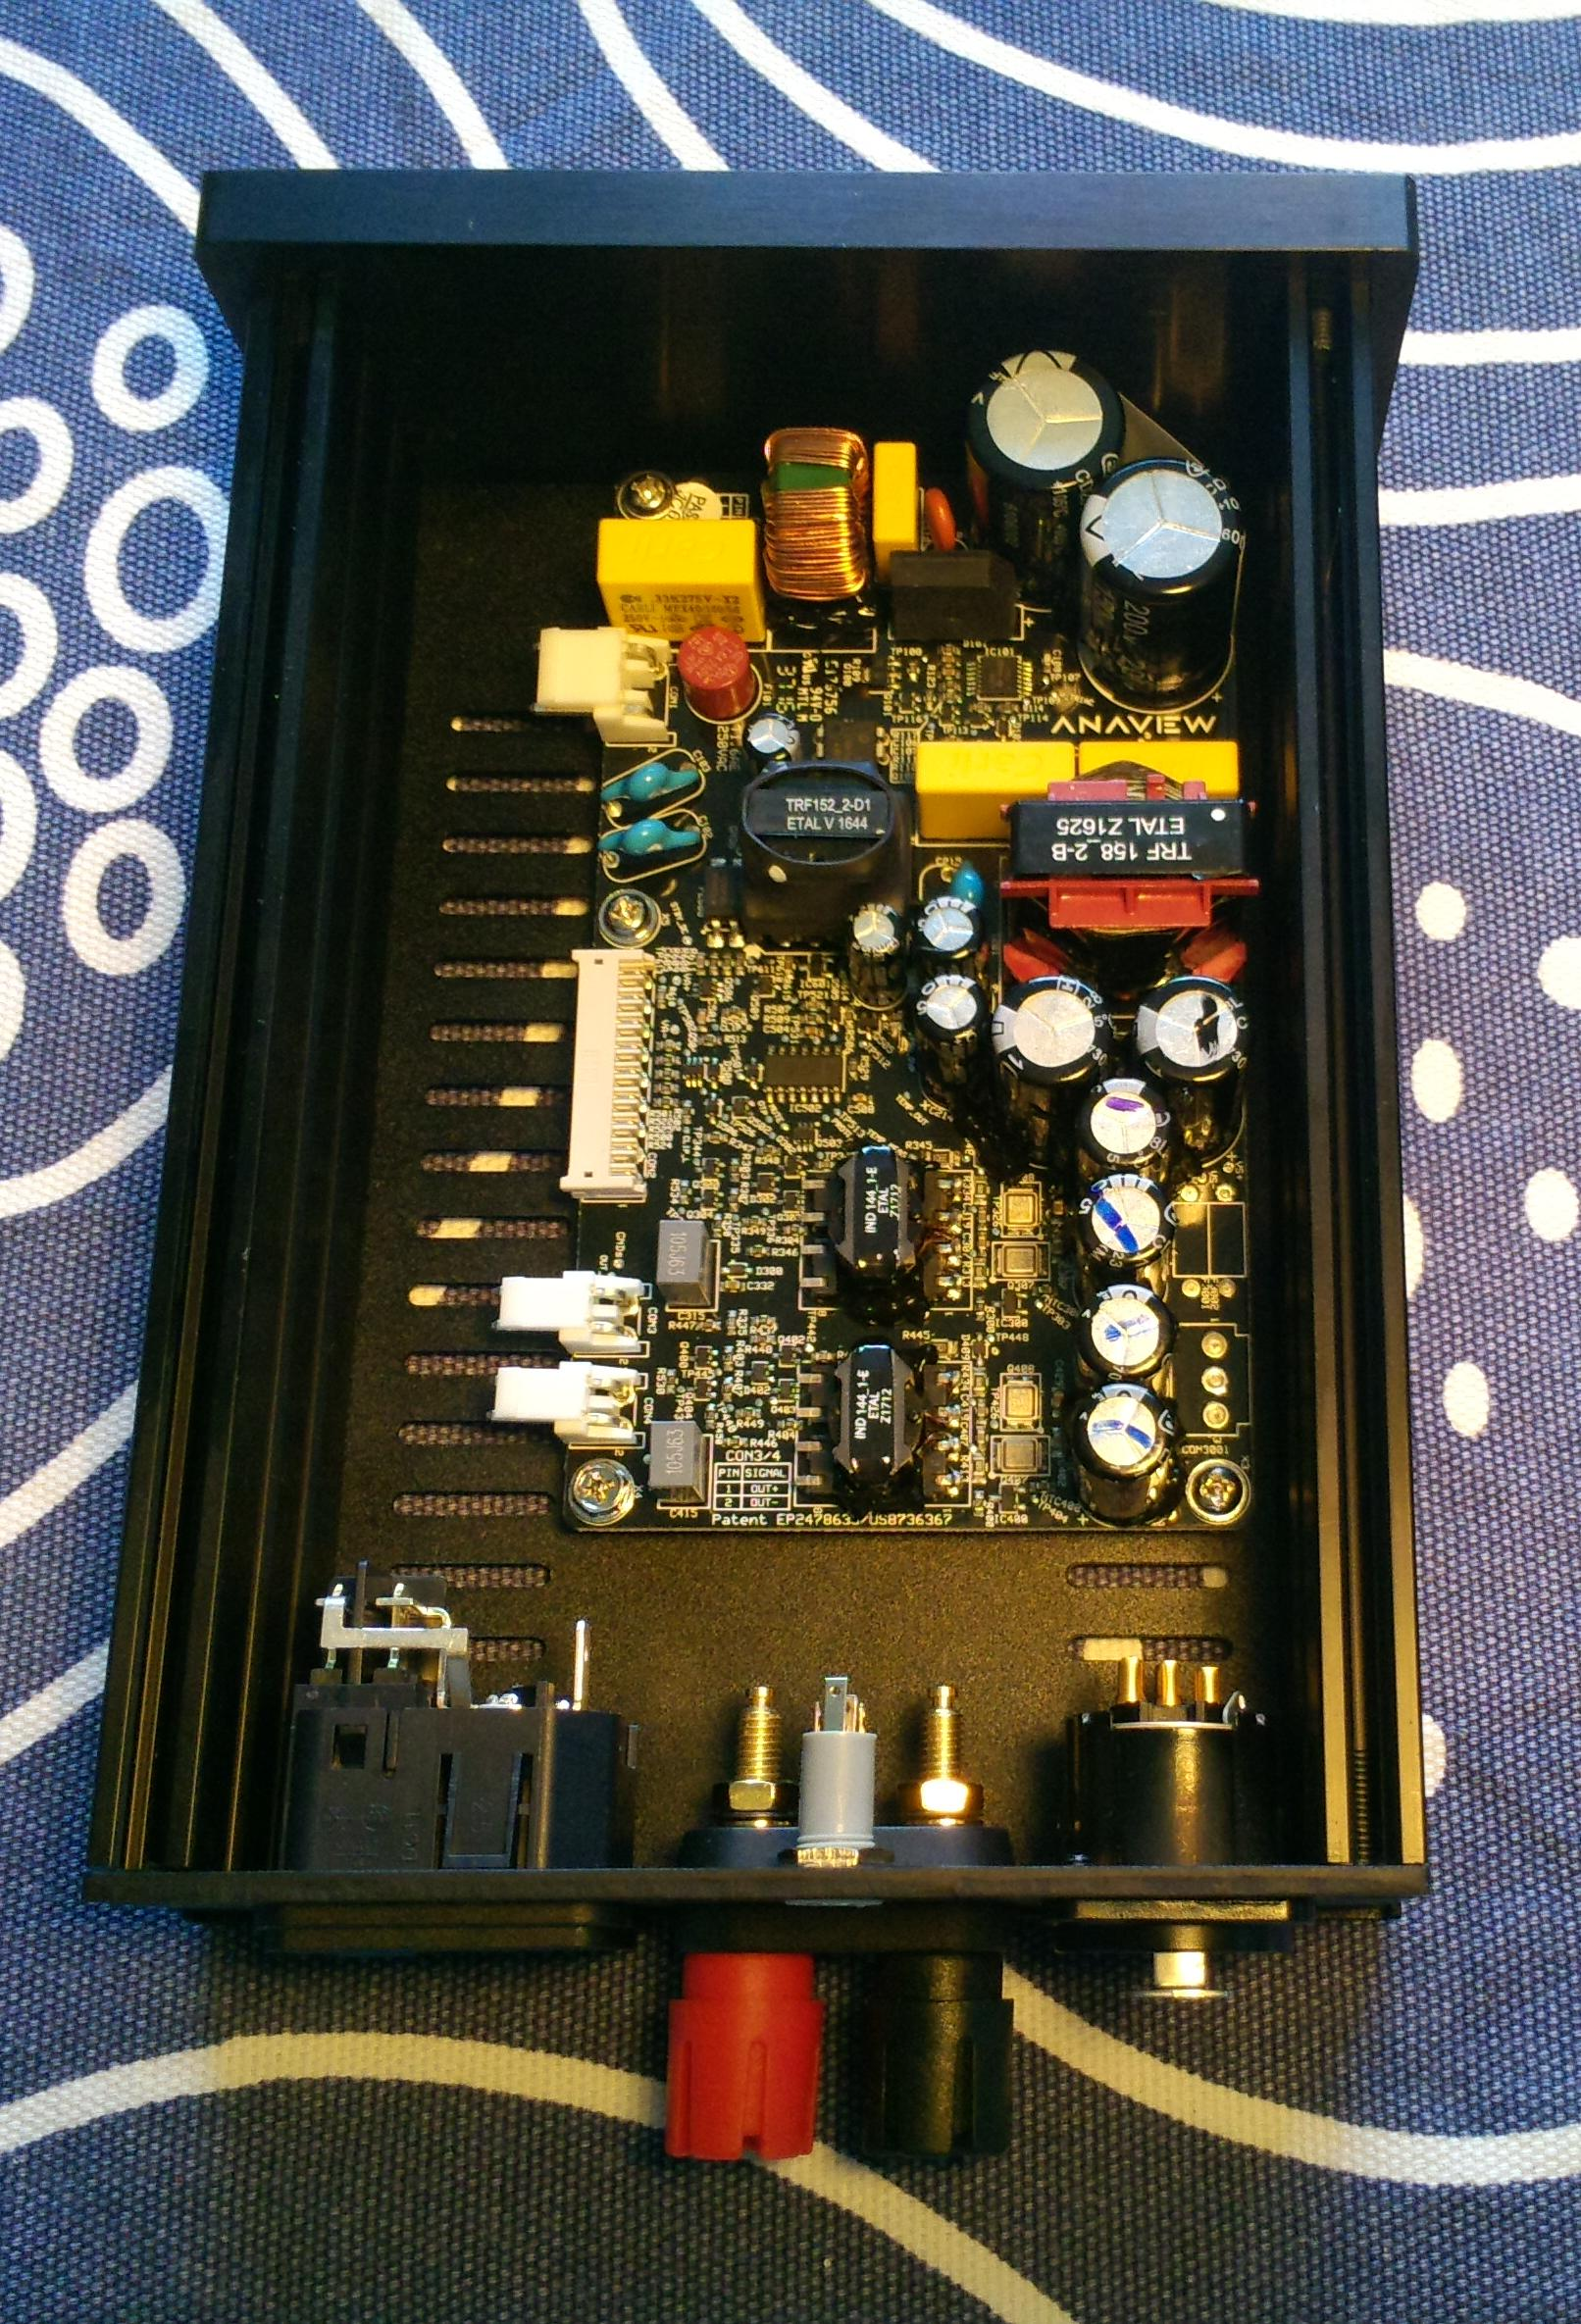 Class D Amp Photo Gallery-anaview_build-jpg